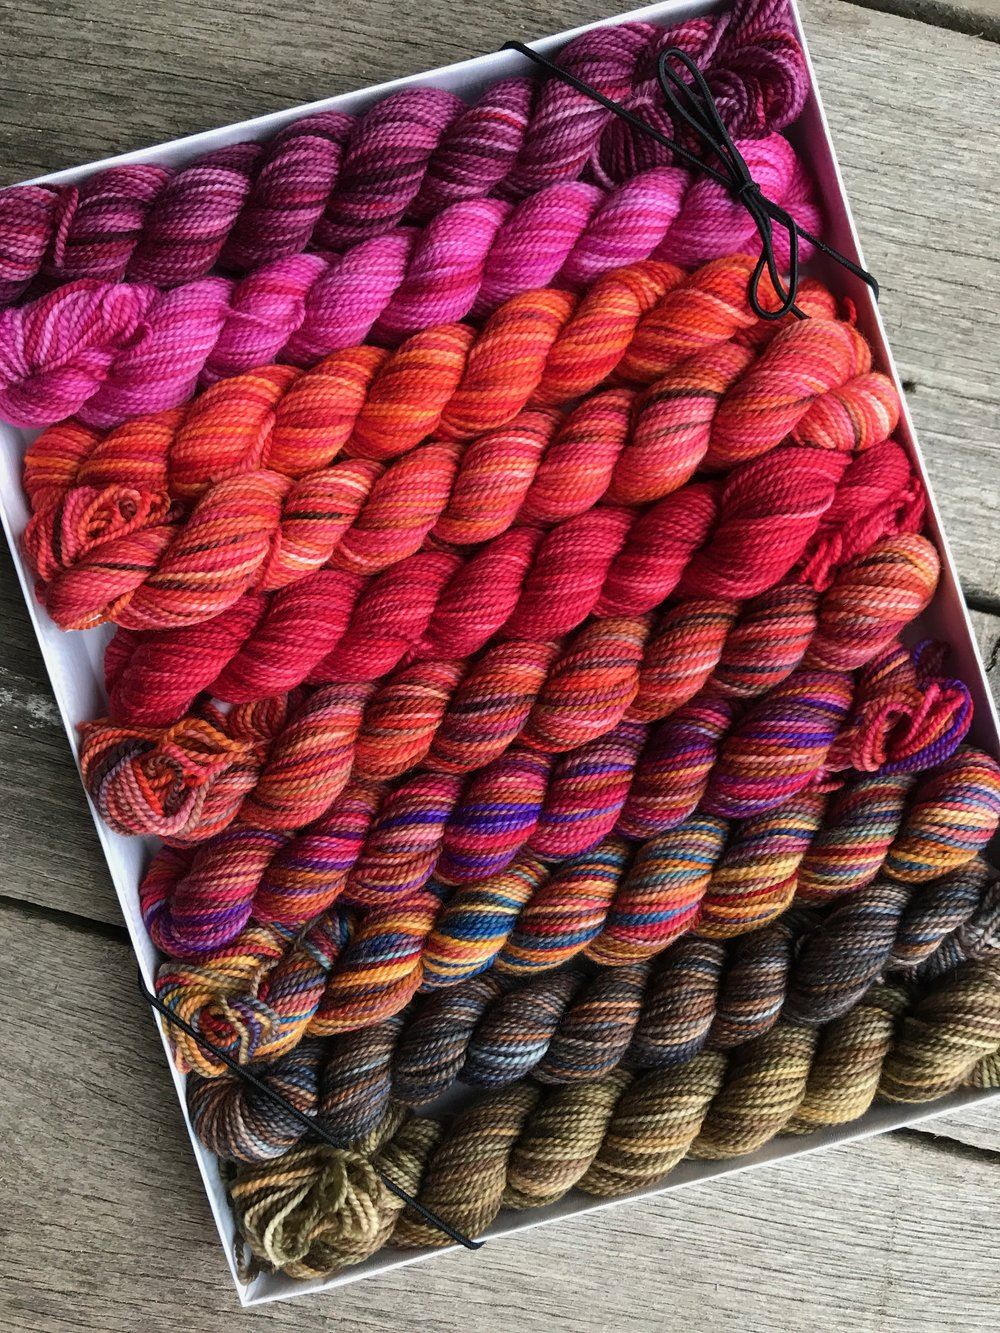 Pencil Box  - Specially curated 12 Demi KPPPM skeins (25g) pencil pack. A wonderful colour starter pack or gift for the connoisseur of KOIGU KPPPM fine yarns. 5 colour assortments to choose from.